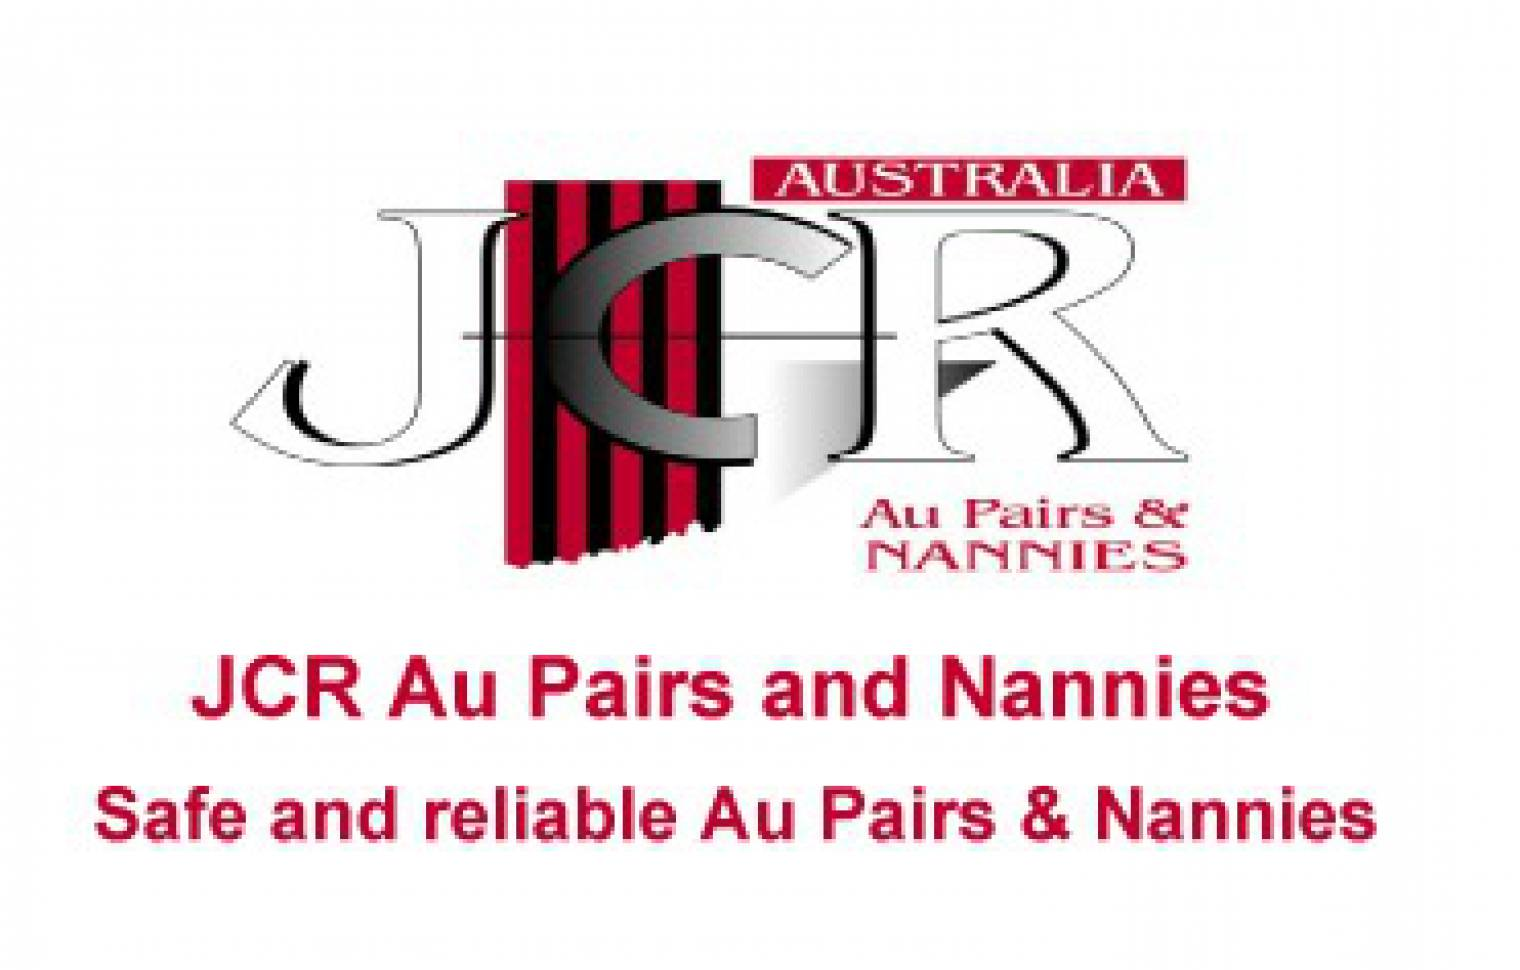 JCR Au Pairs and Nannies